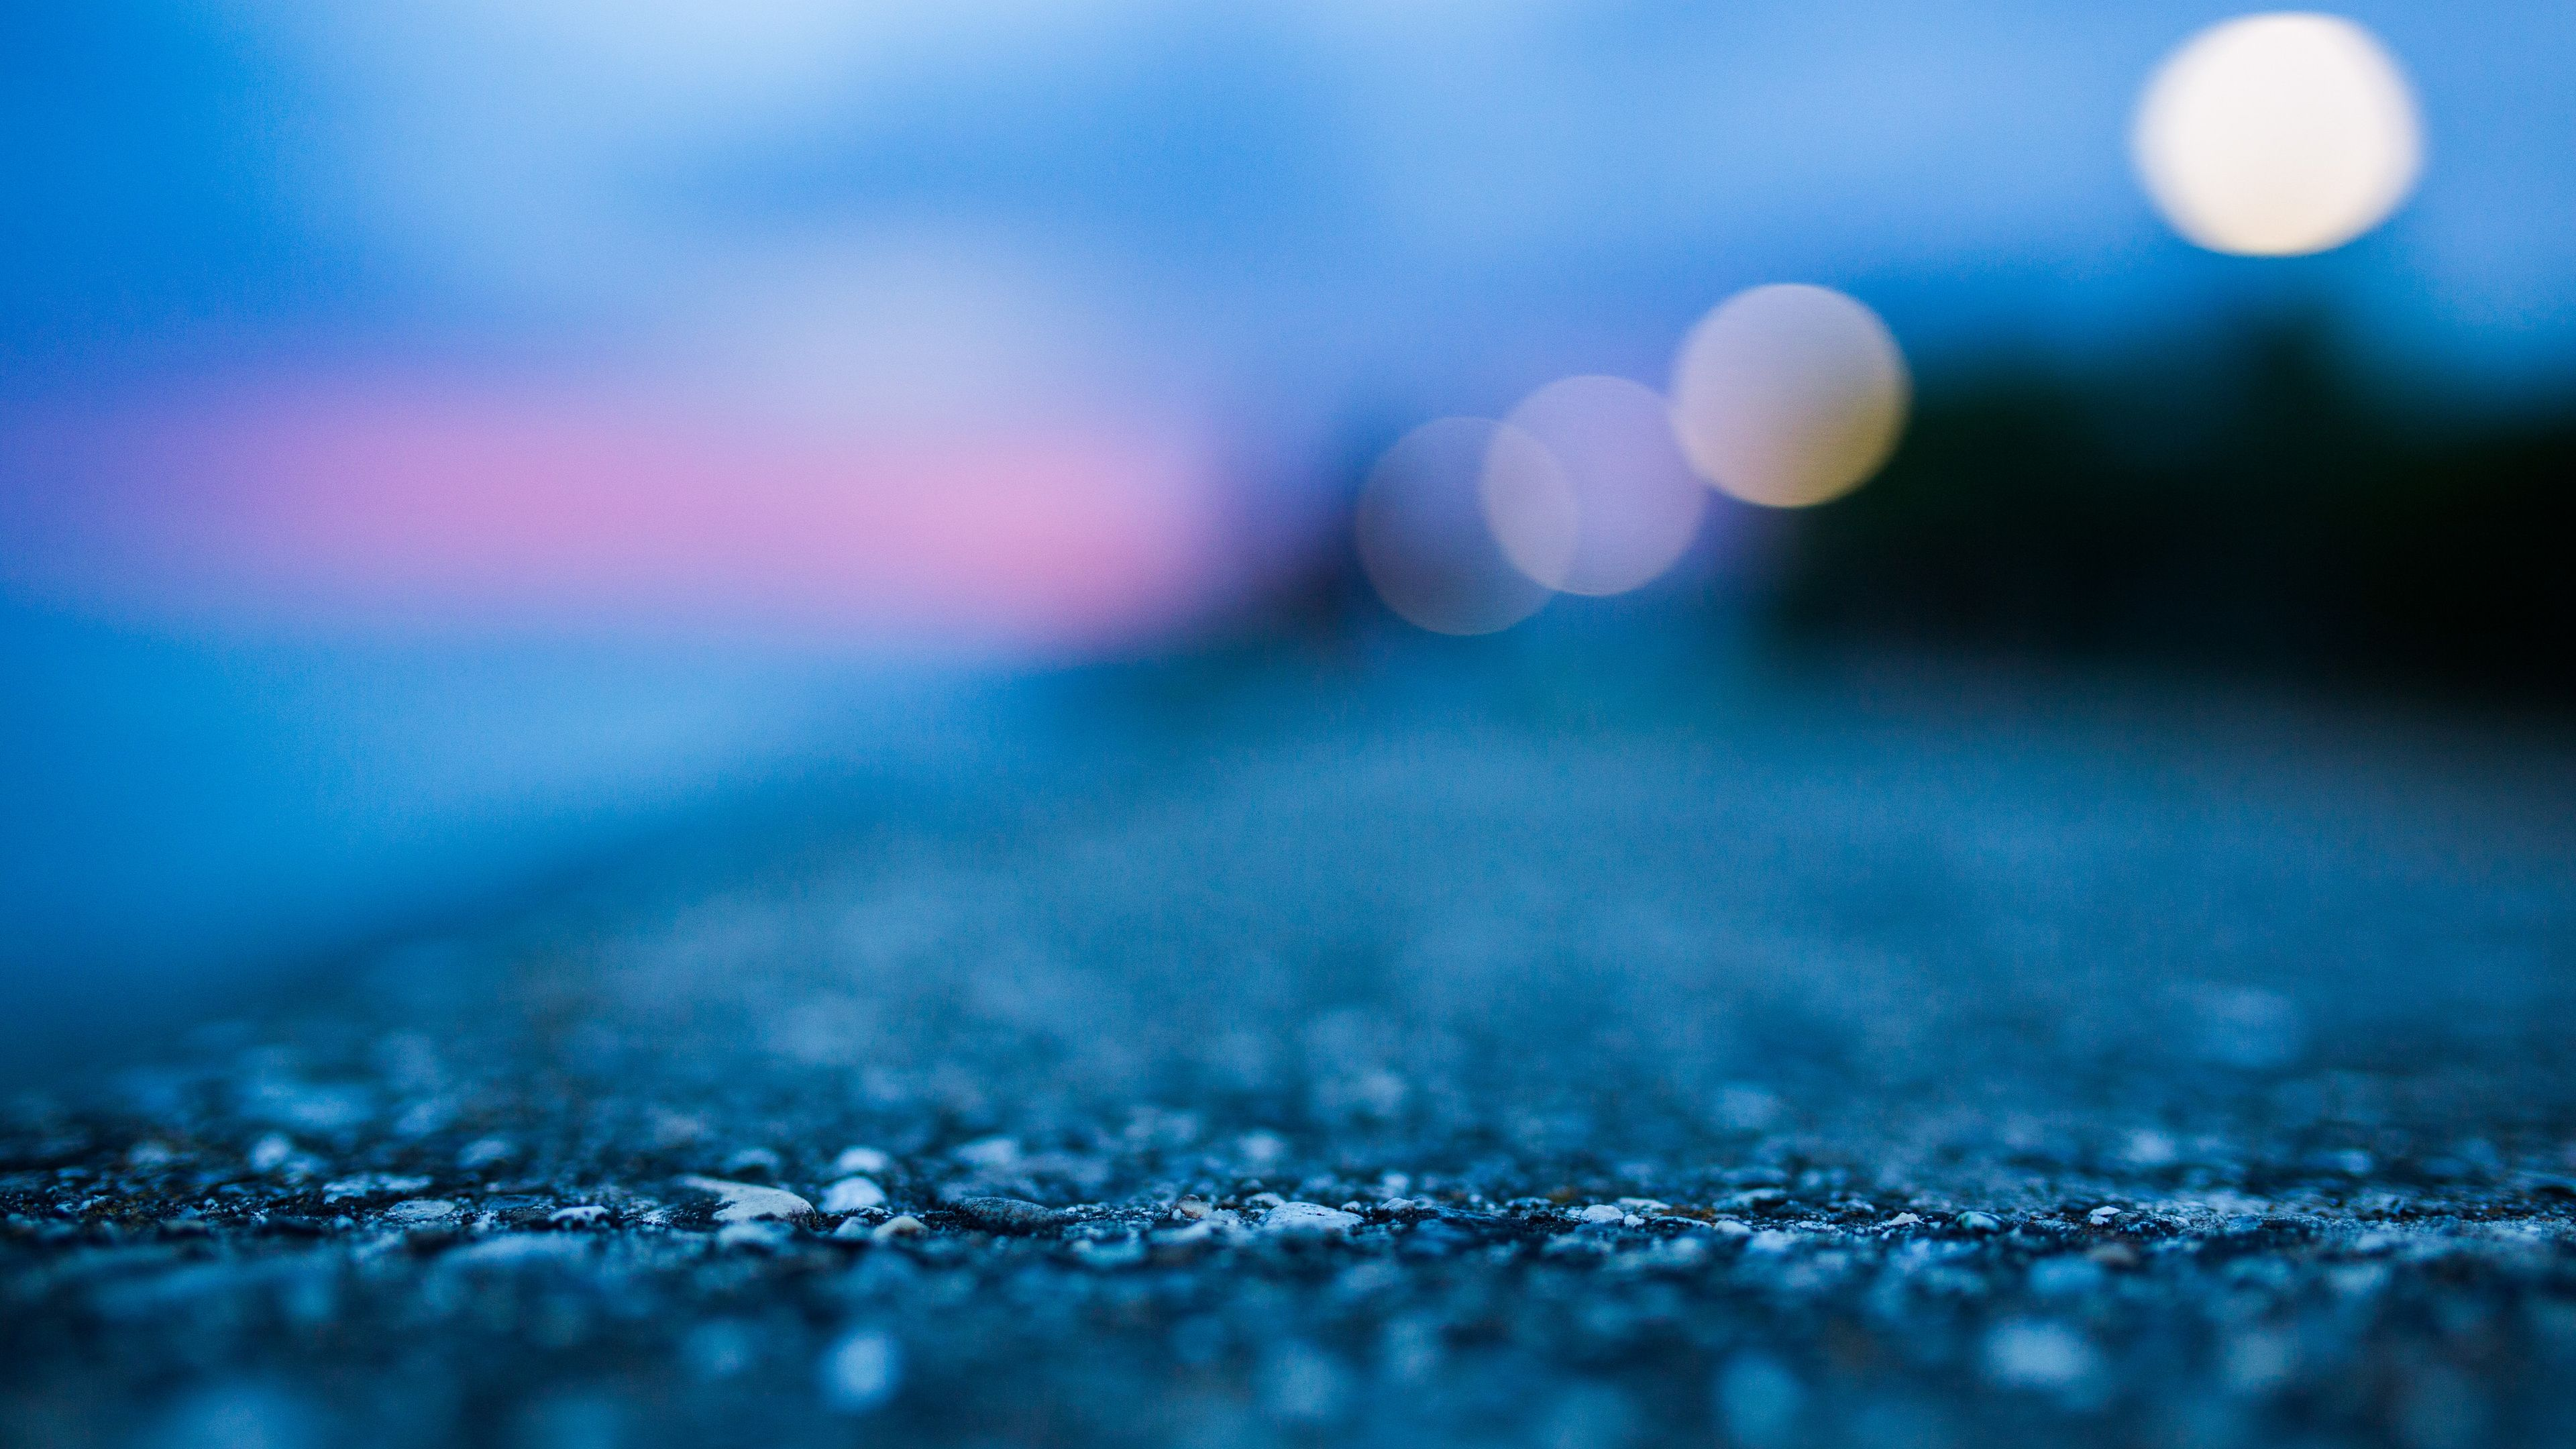 Abstract Blue Concrete Ground Macro Macro Wallpapers Hd Wallpapers Bokeh E Abstract Wallpaper Wallpaper For Computer Backgrounds Computer Background Pictures